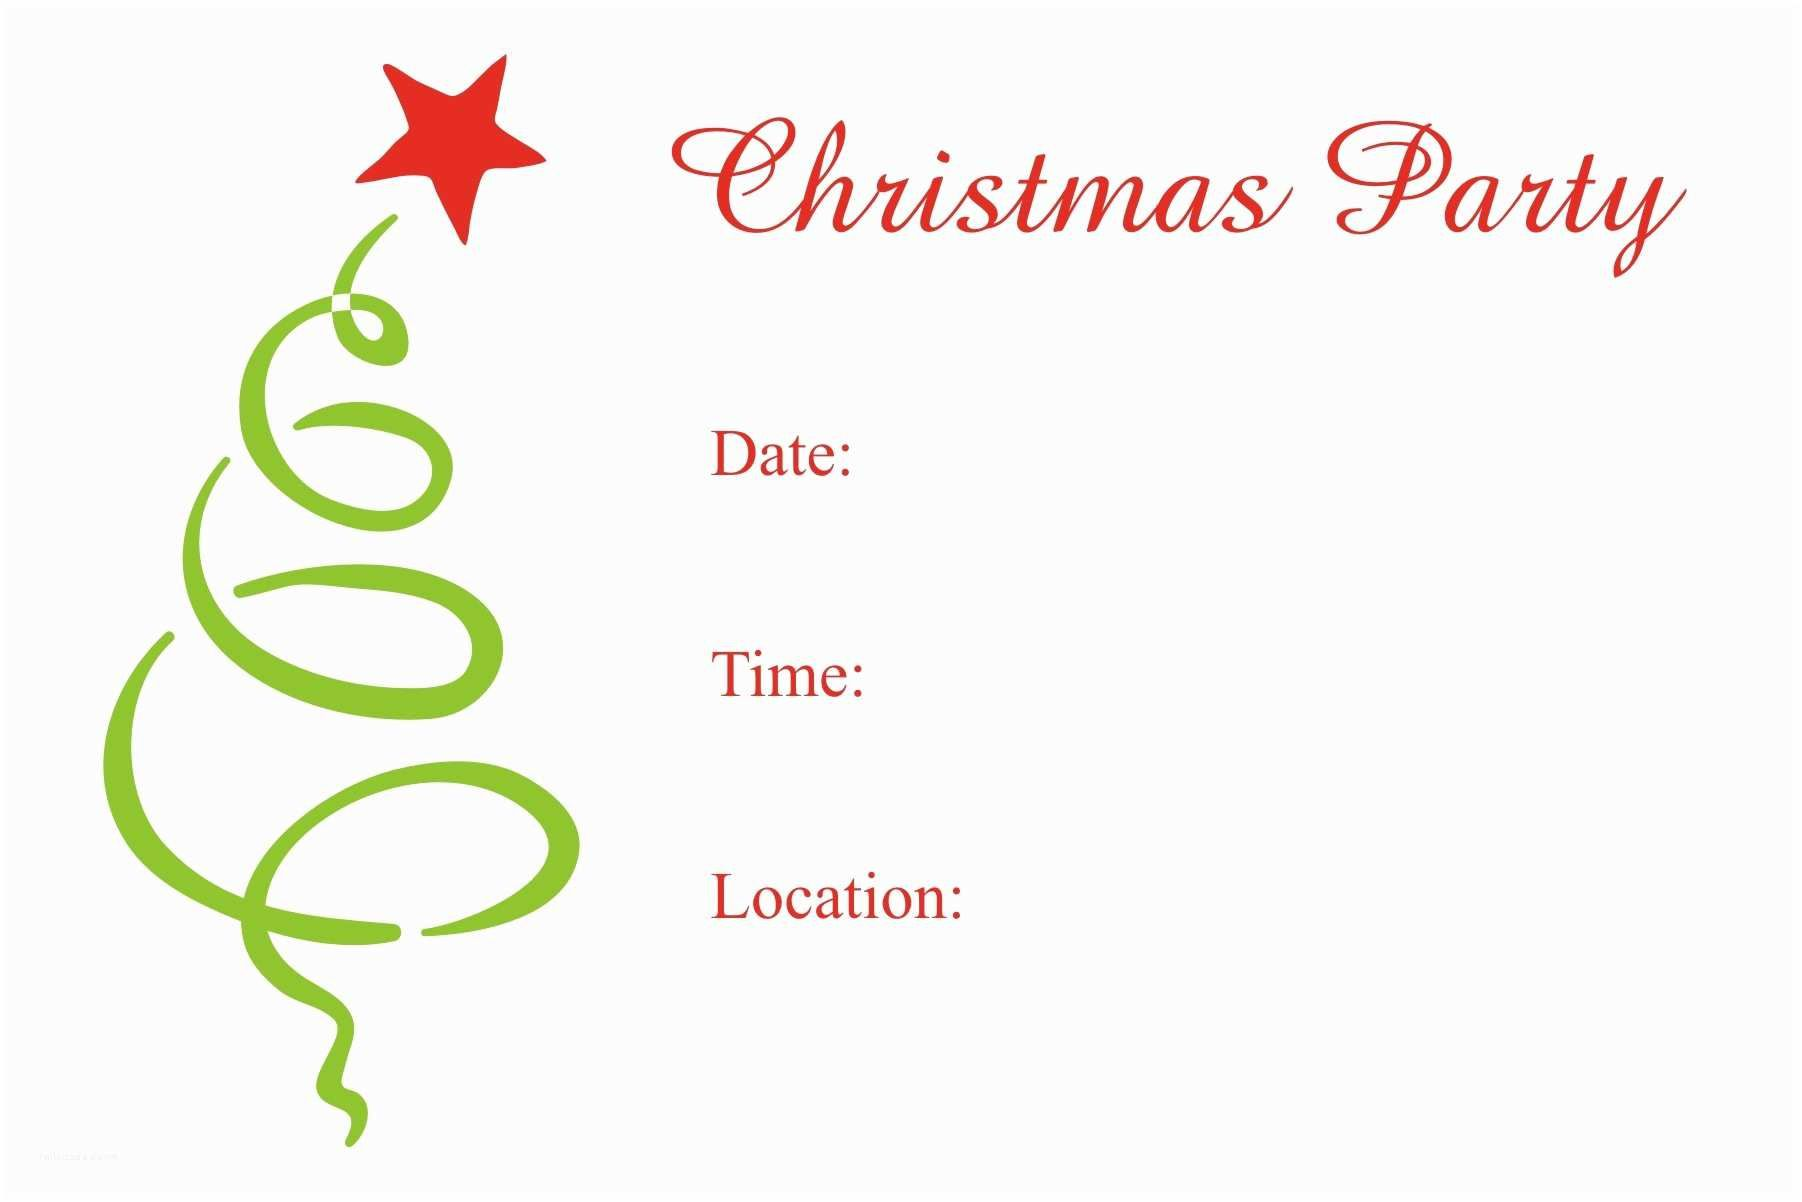 007 Archaicawful Christma Party Invitation Template Highest Clarity  Holiday Download Free PsdFull